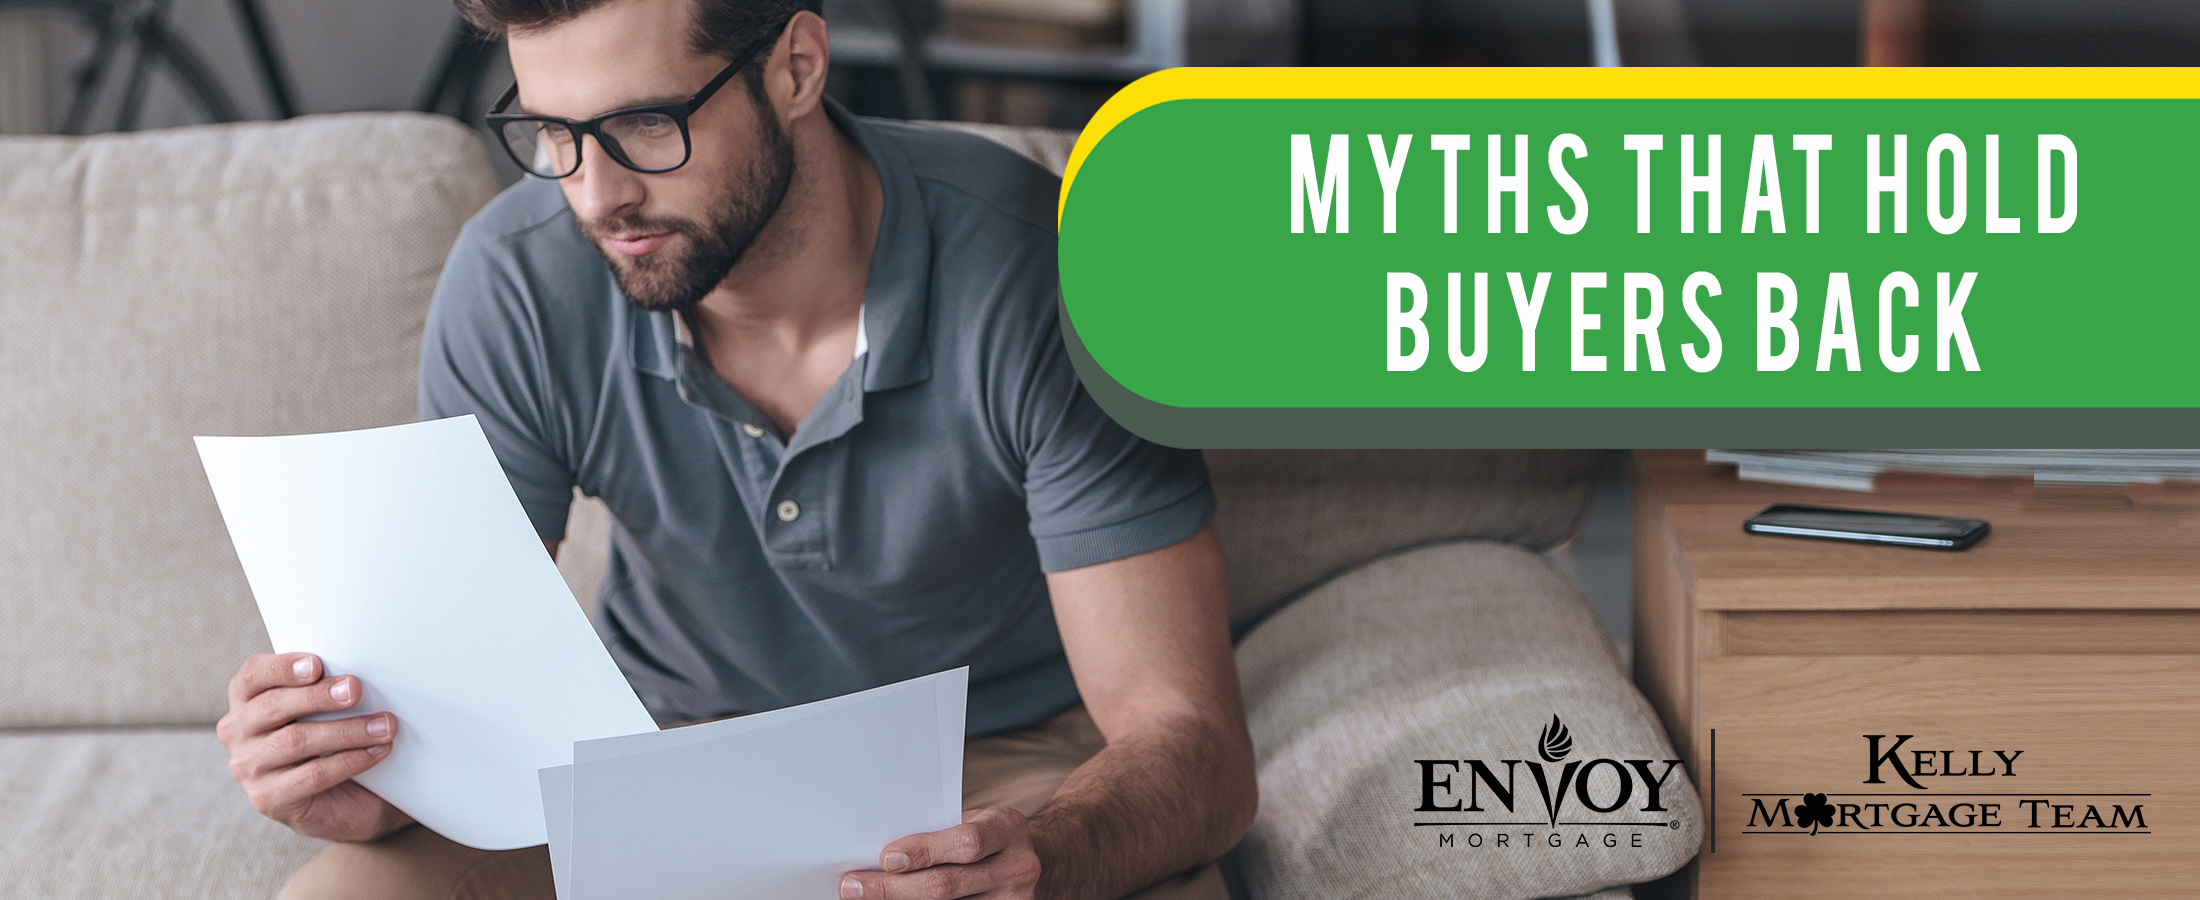 Myths that Hold Buyers Back